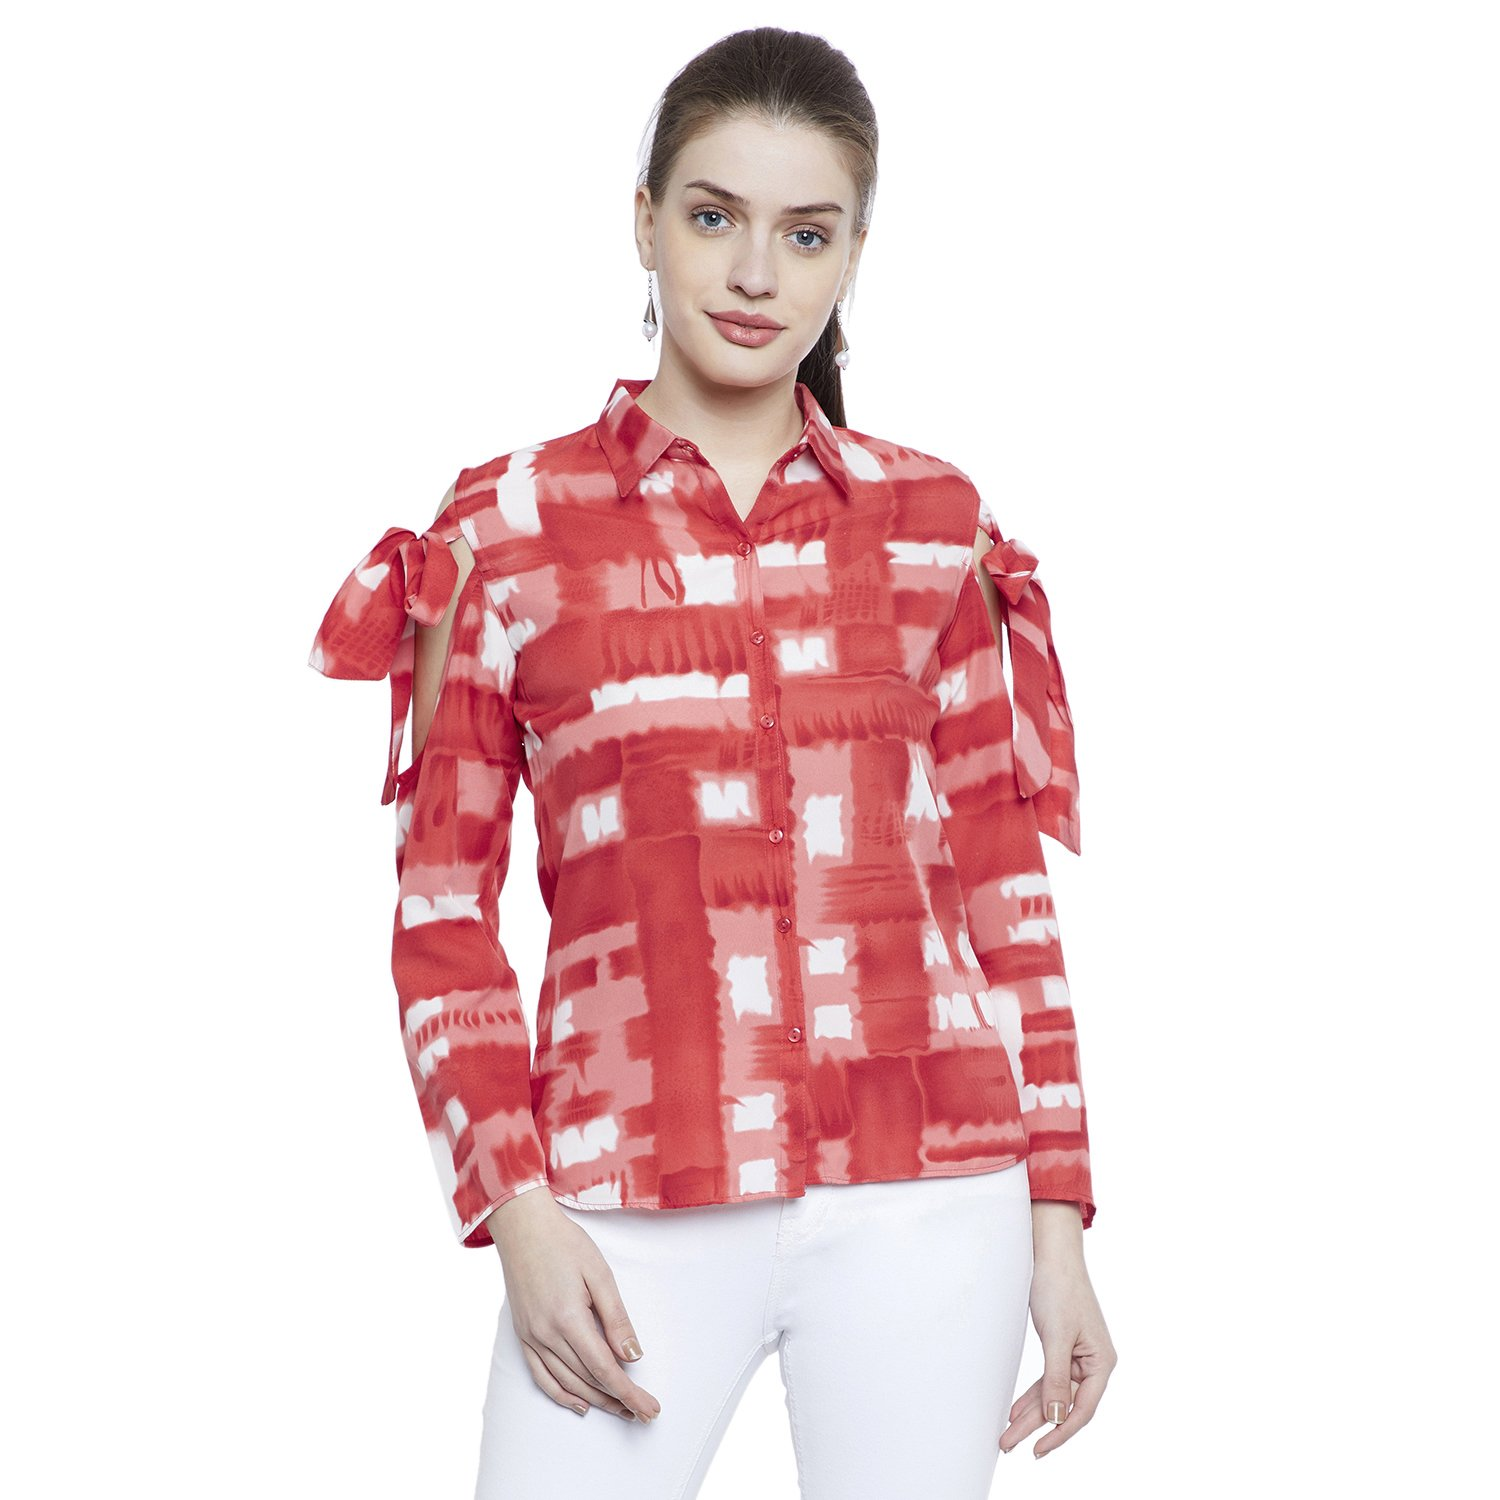 754771d4e39ac9 Fabulous Me Women s Crepe Cold Shoulder with Tie up Sleeve Top (Red)   Amazon.in  Clothing   Accessories